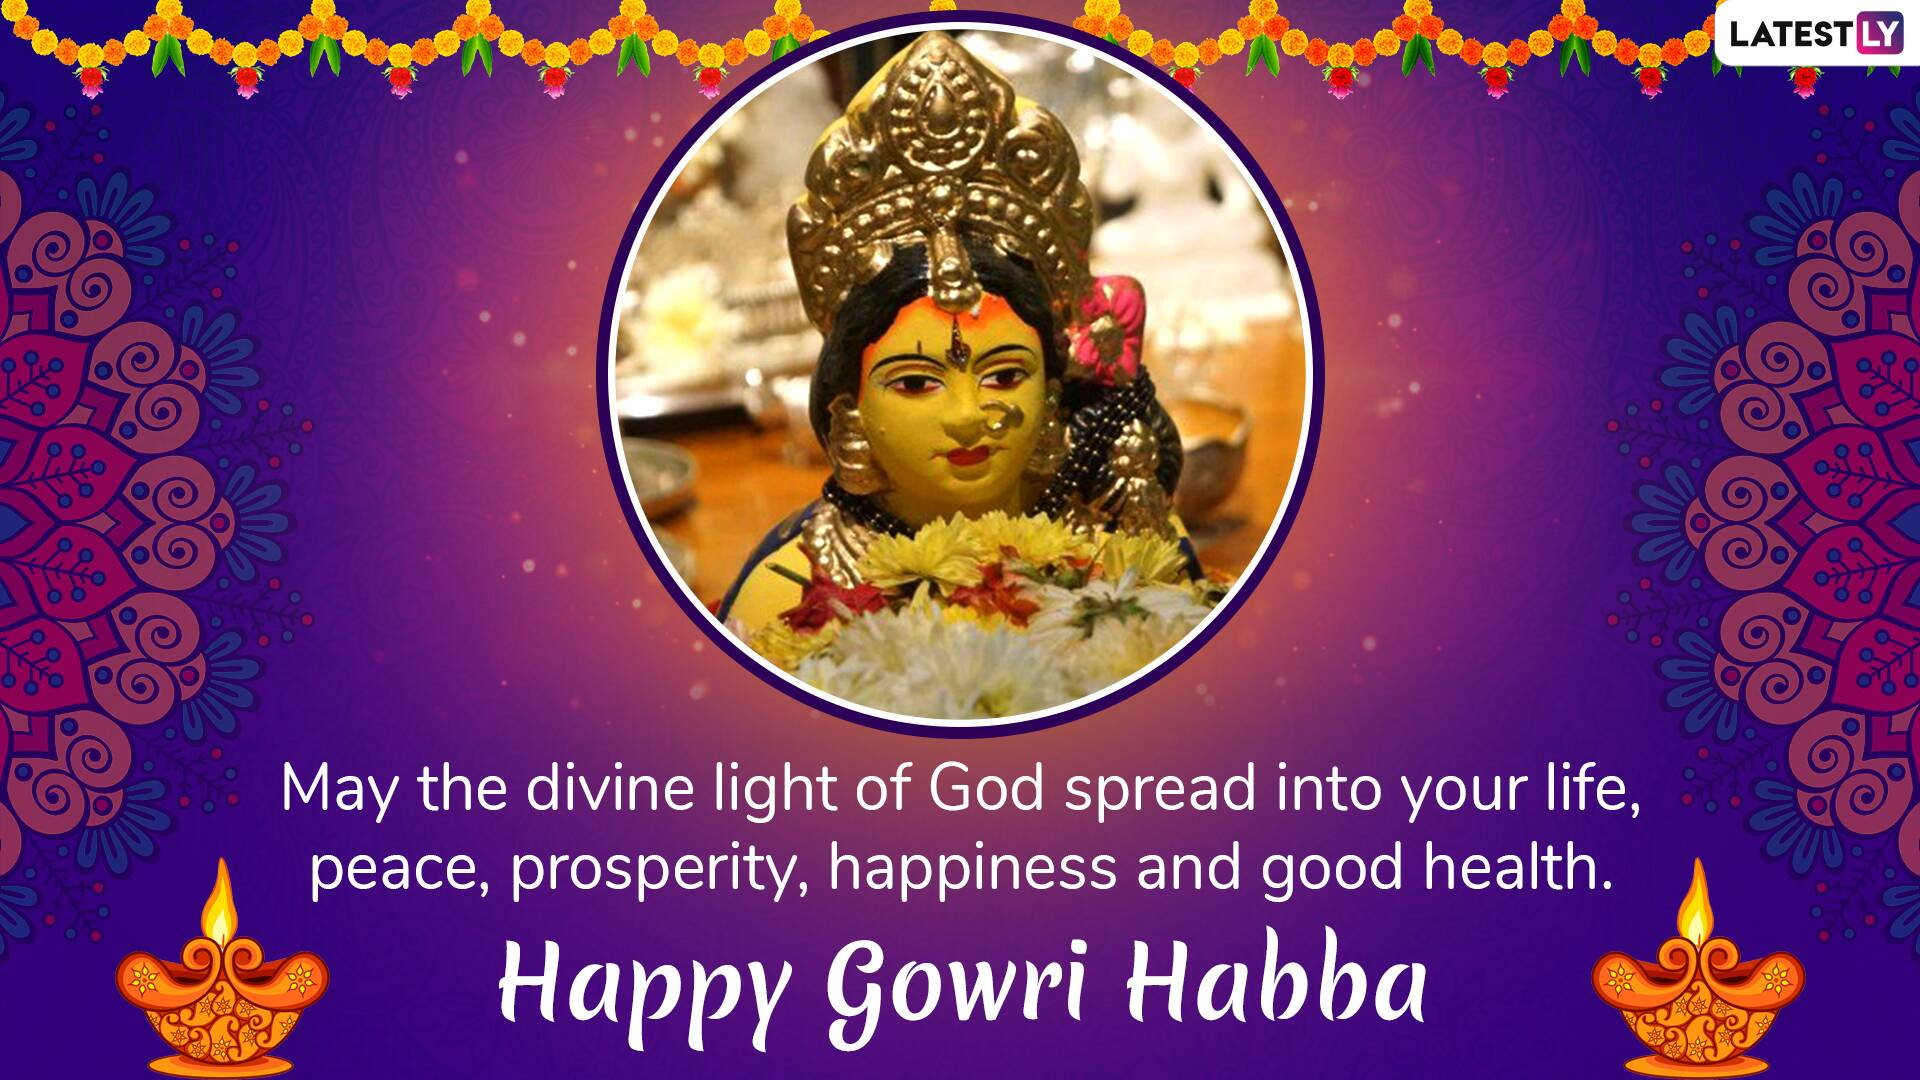 Gowri Habba Wishes Facebook thumbnail